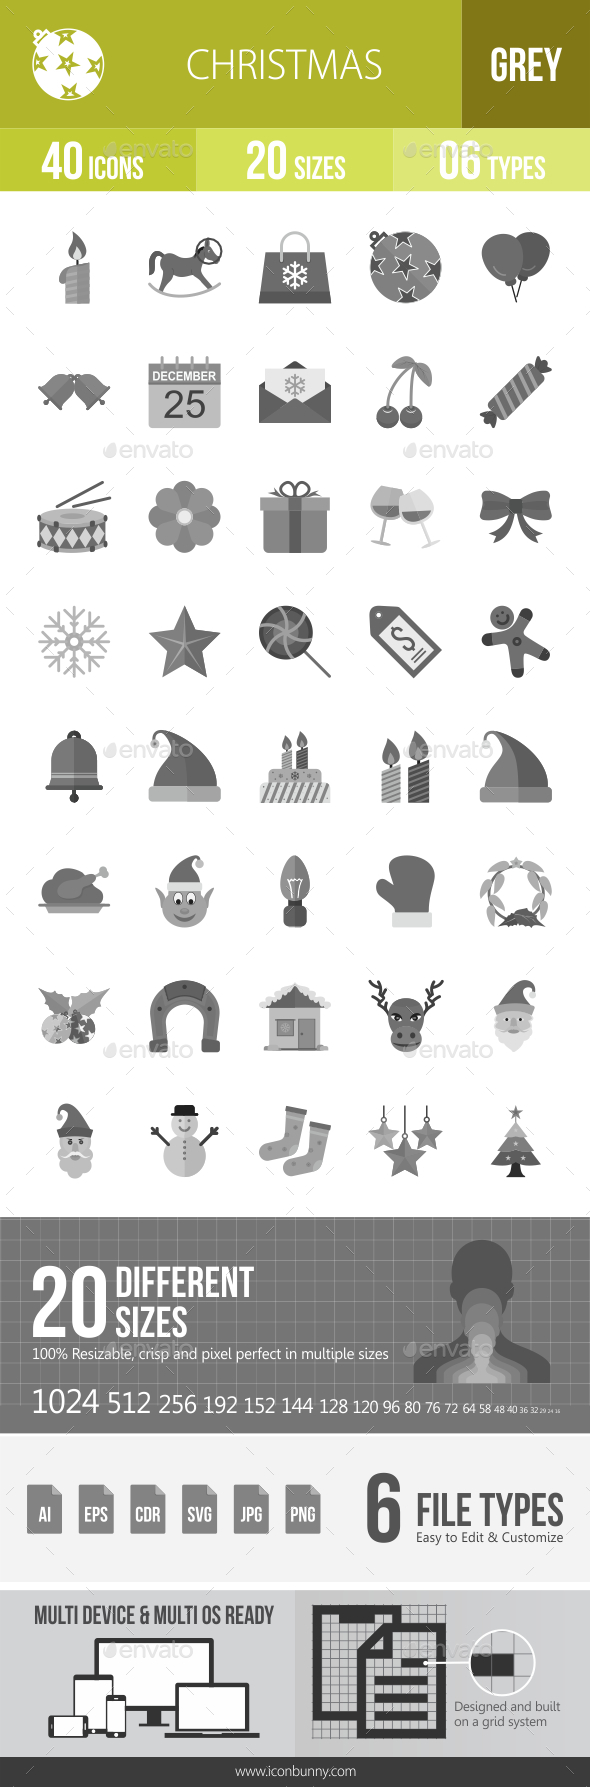 40 Christmas Grey Scale Icons - Icons